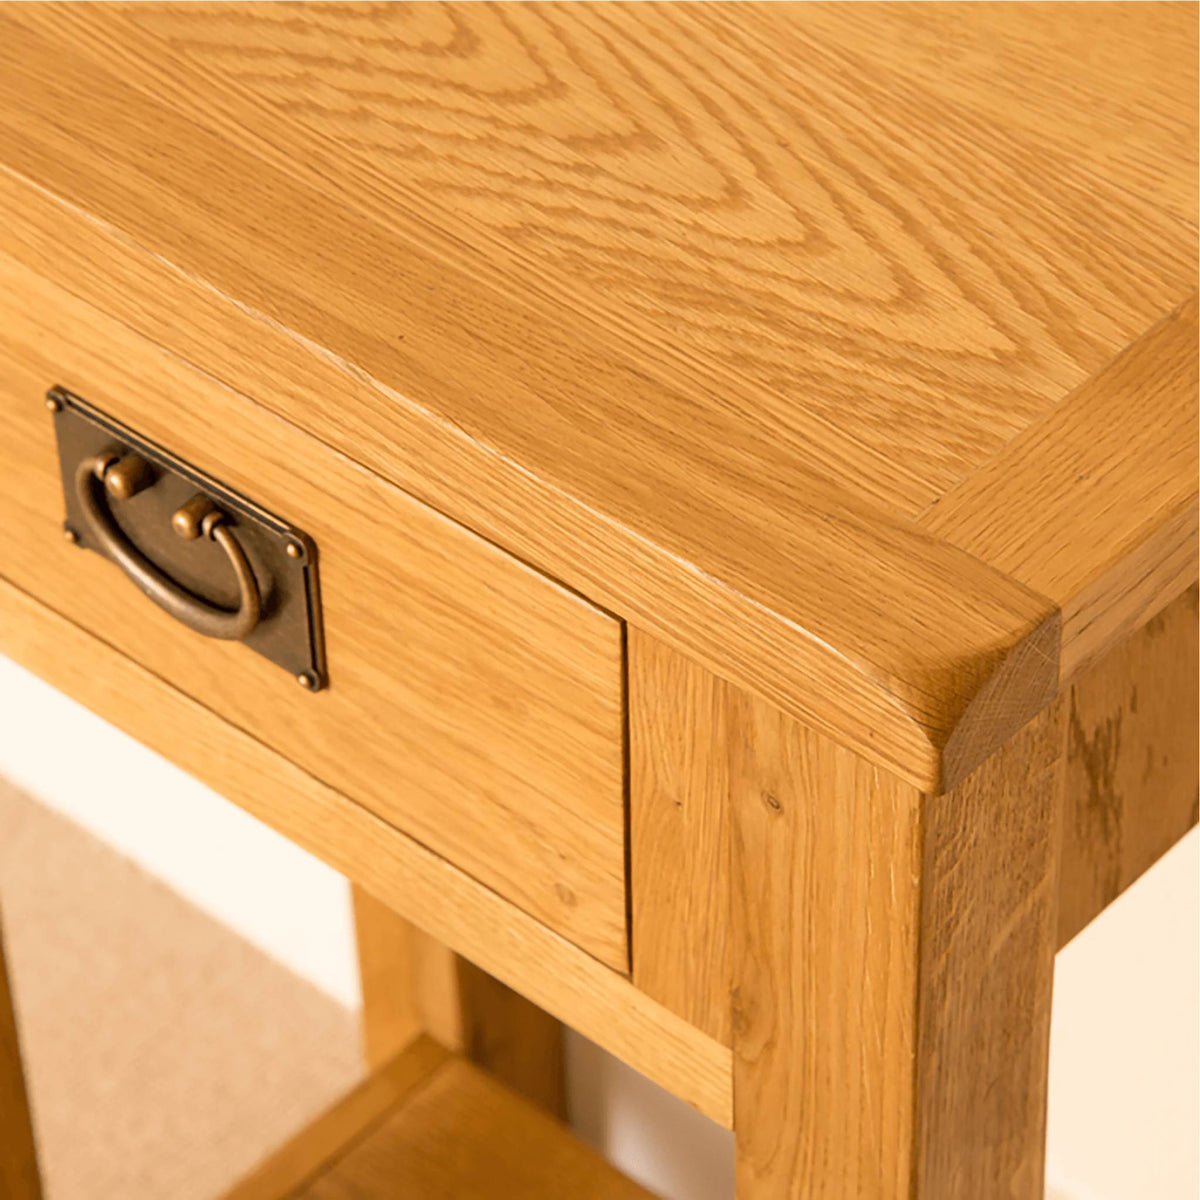 Lanner Oak Telephone Table drawer close up view